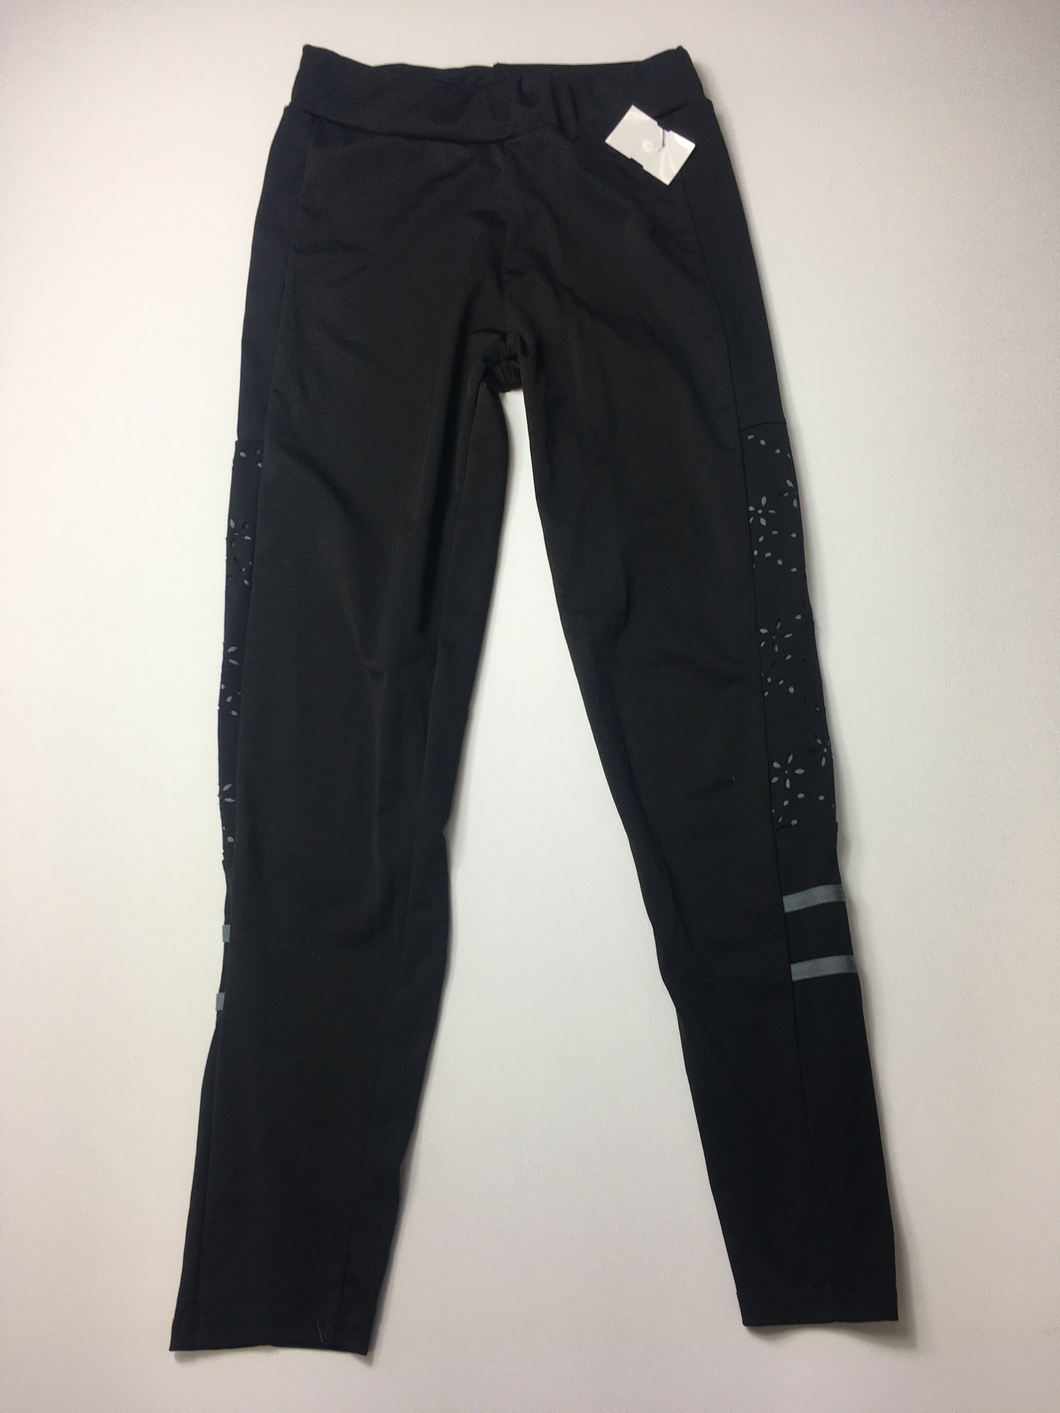 Athletic Pants Size Small